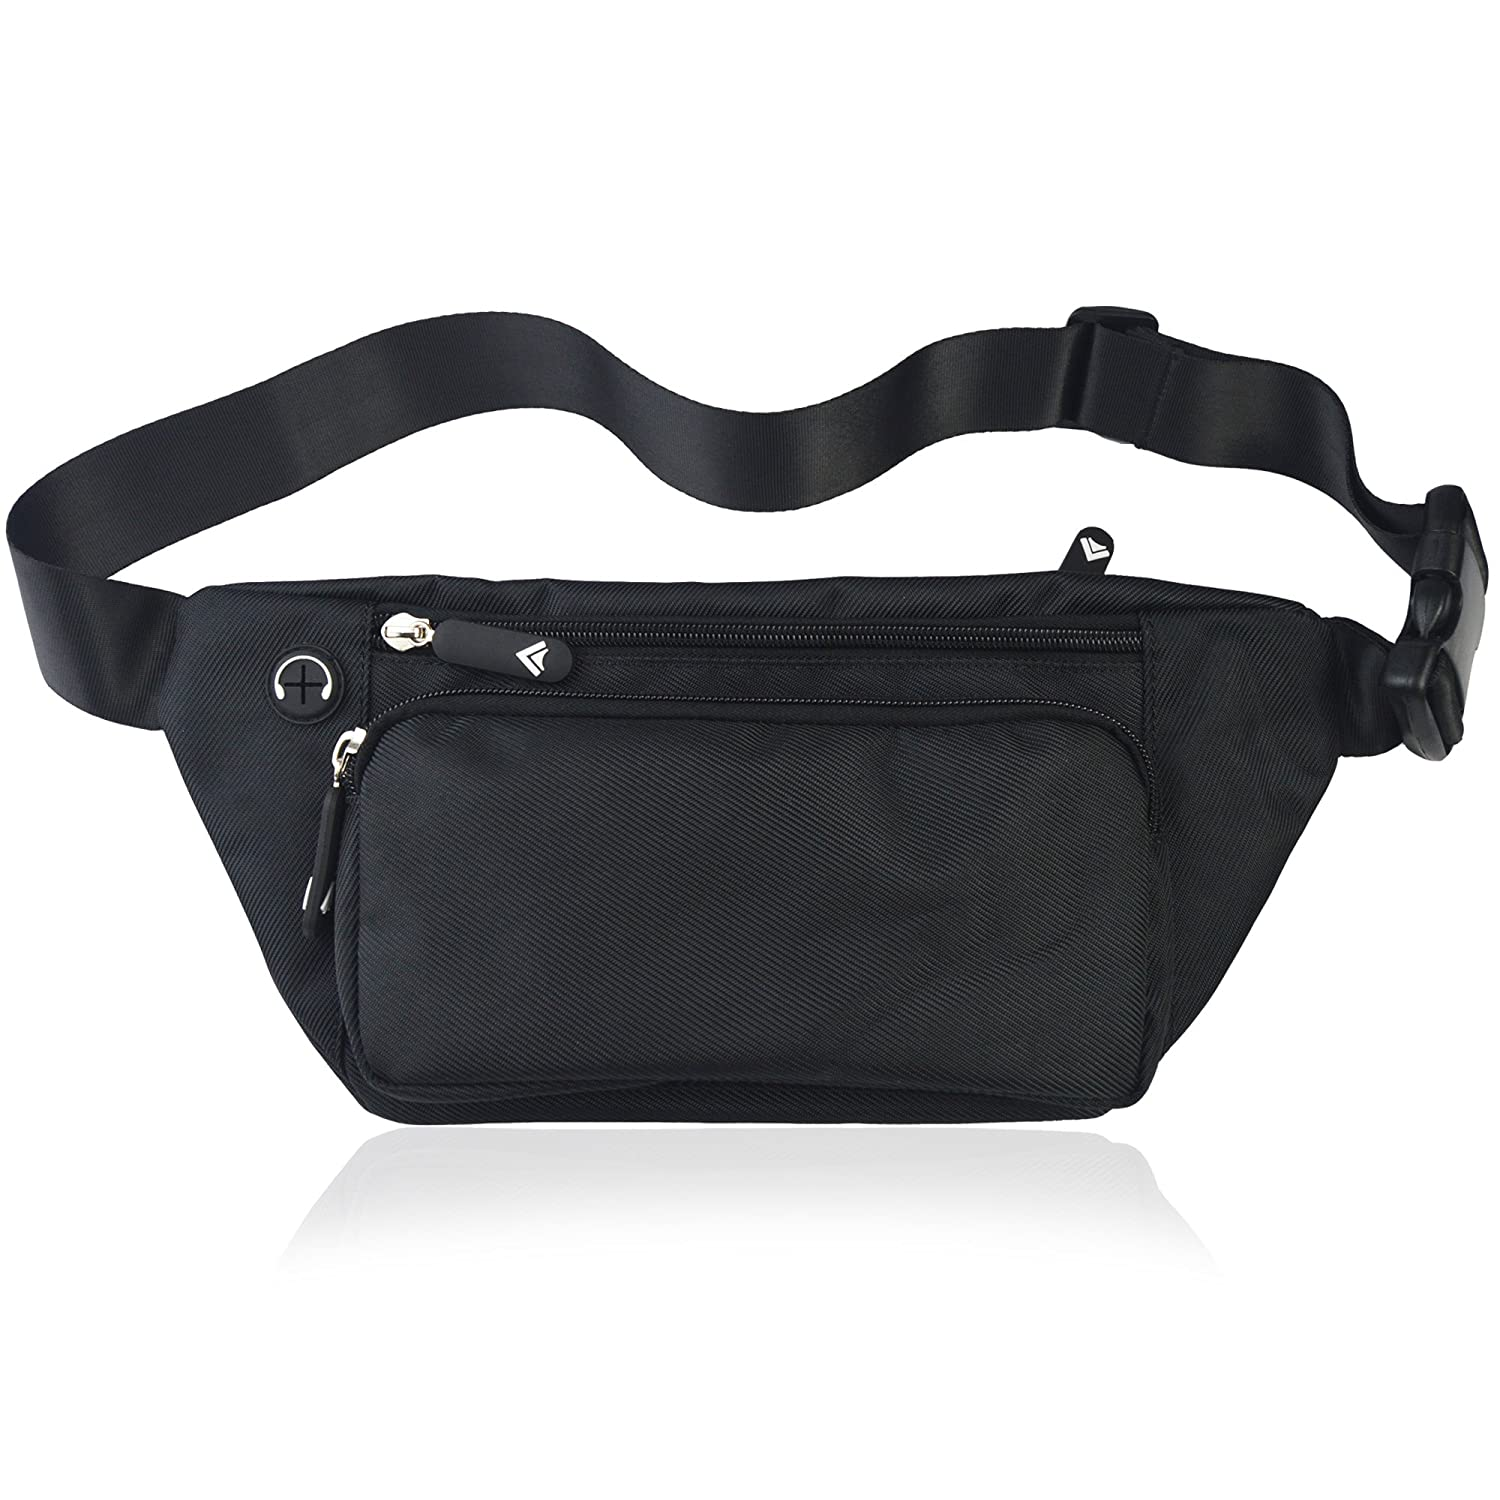 4352df37a99b TIFRY Fanny Pack for Men Women Waist Pack Bag Quick Release Buckle Water  Resistant